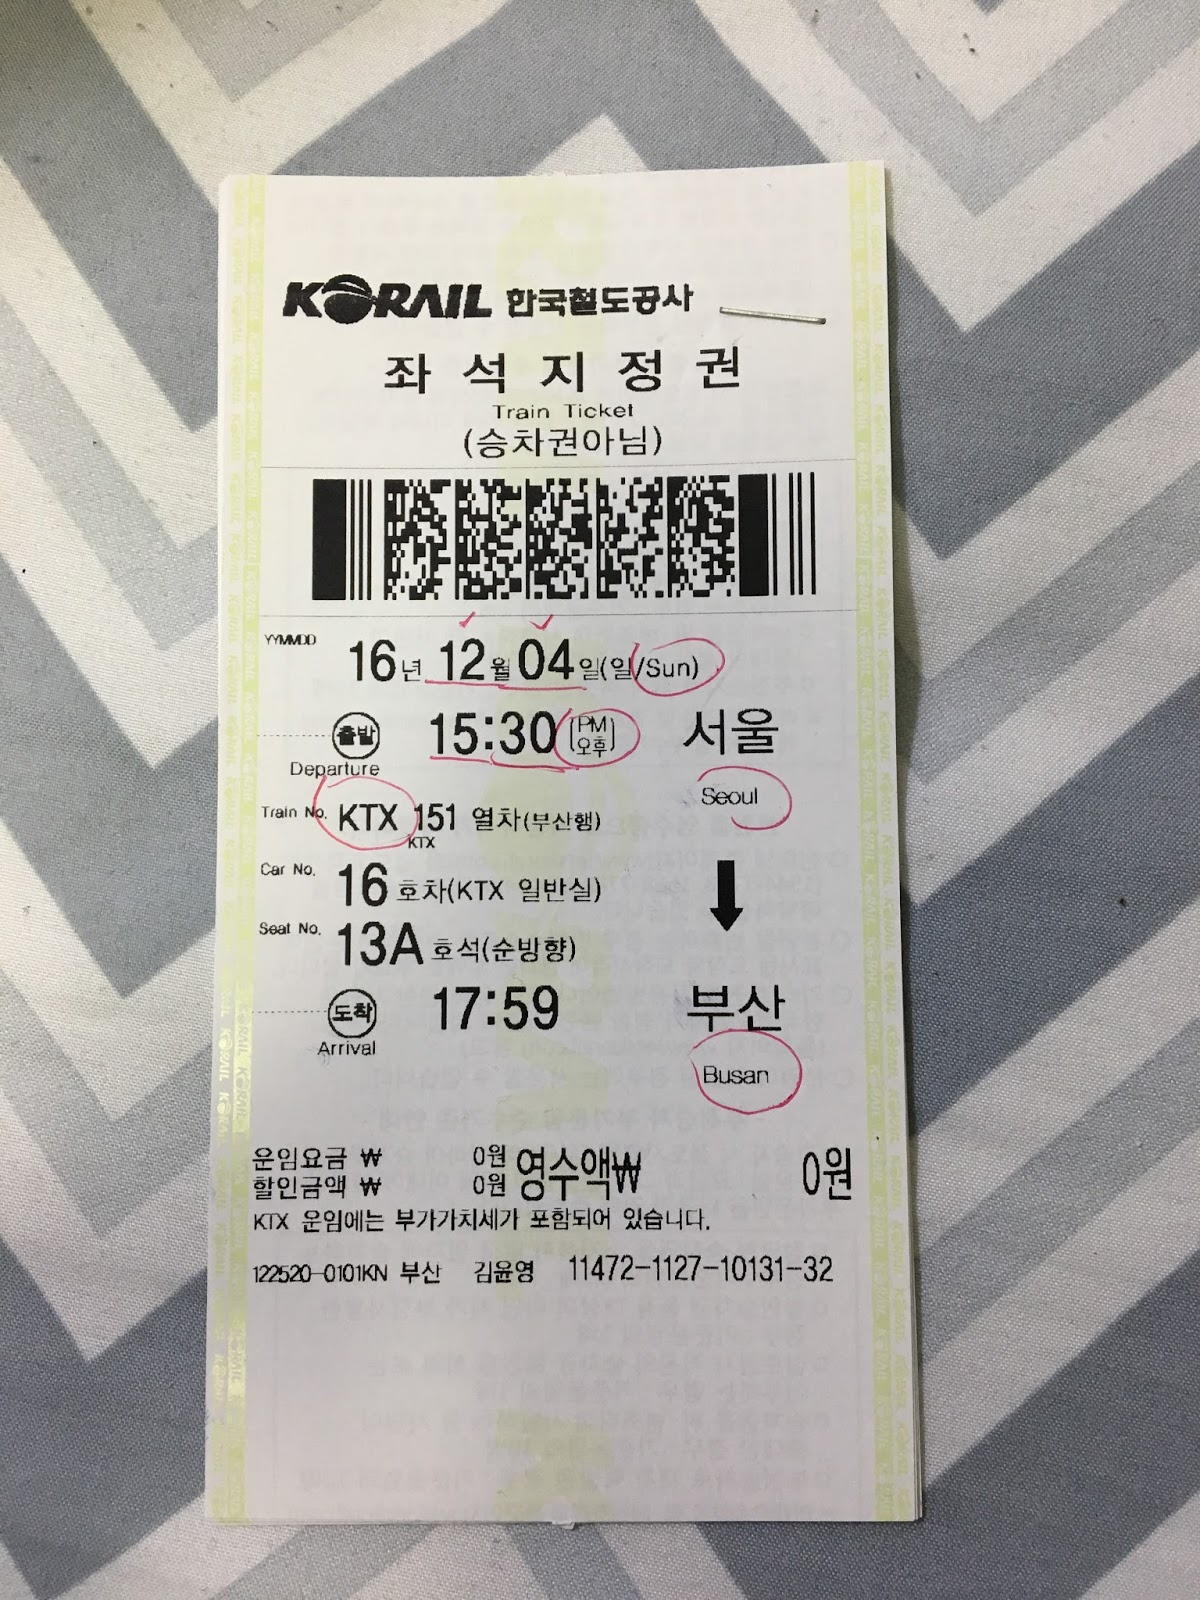 how to buy ktx ticket from seoul to busan